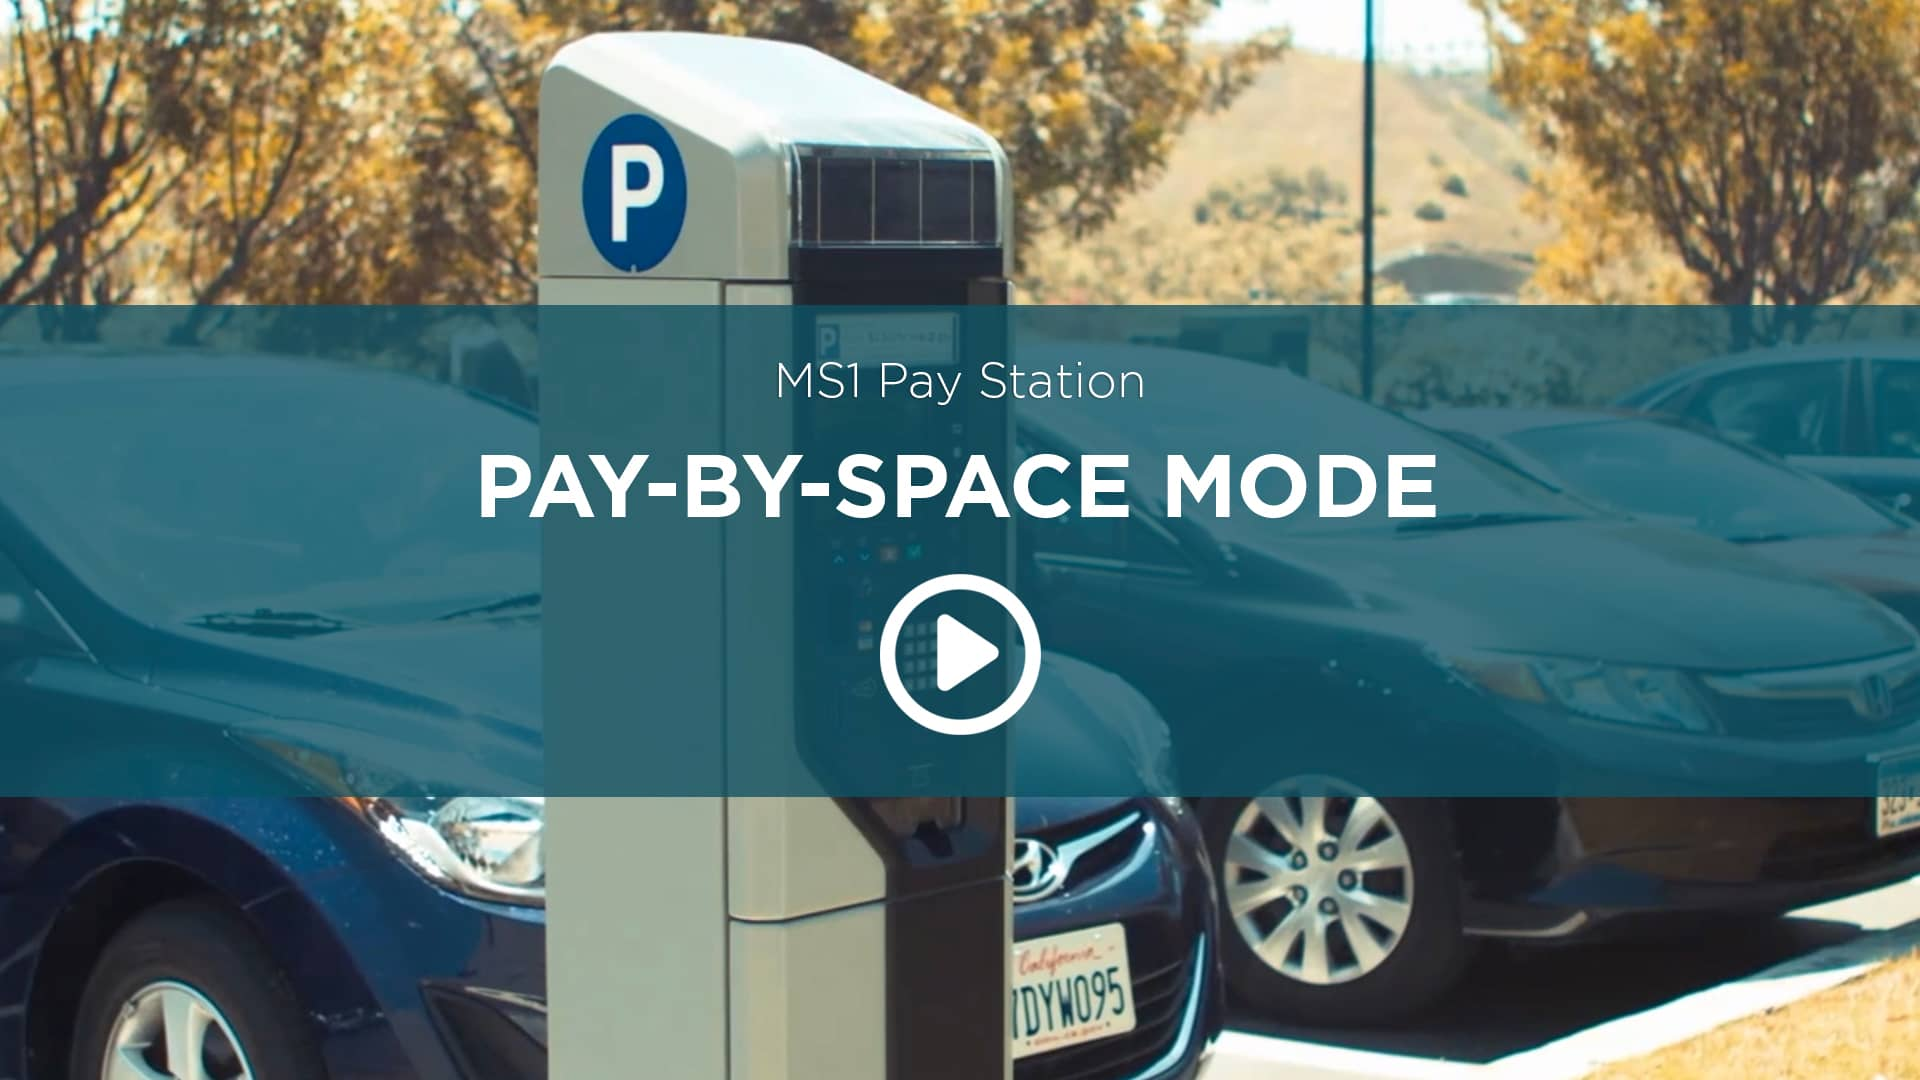 MS1 Pay-By-Space